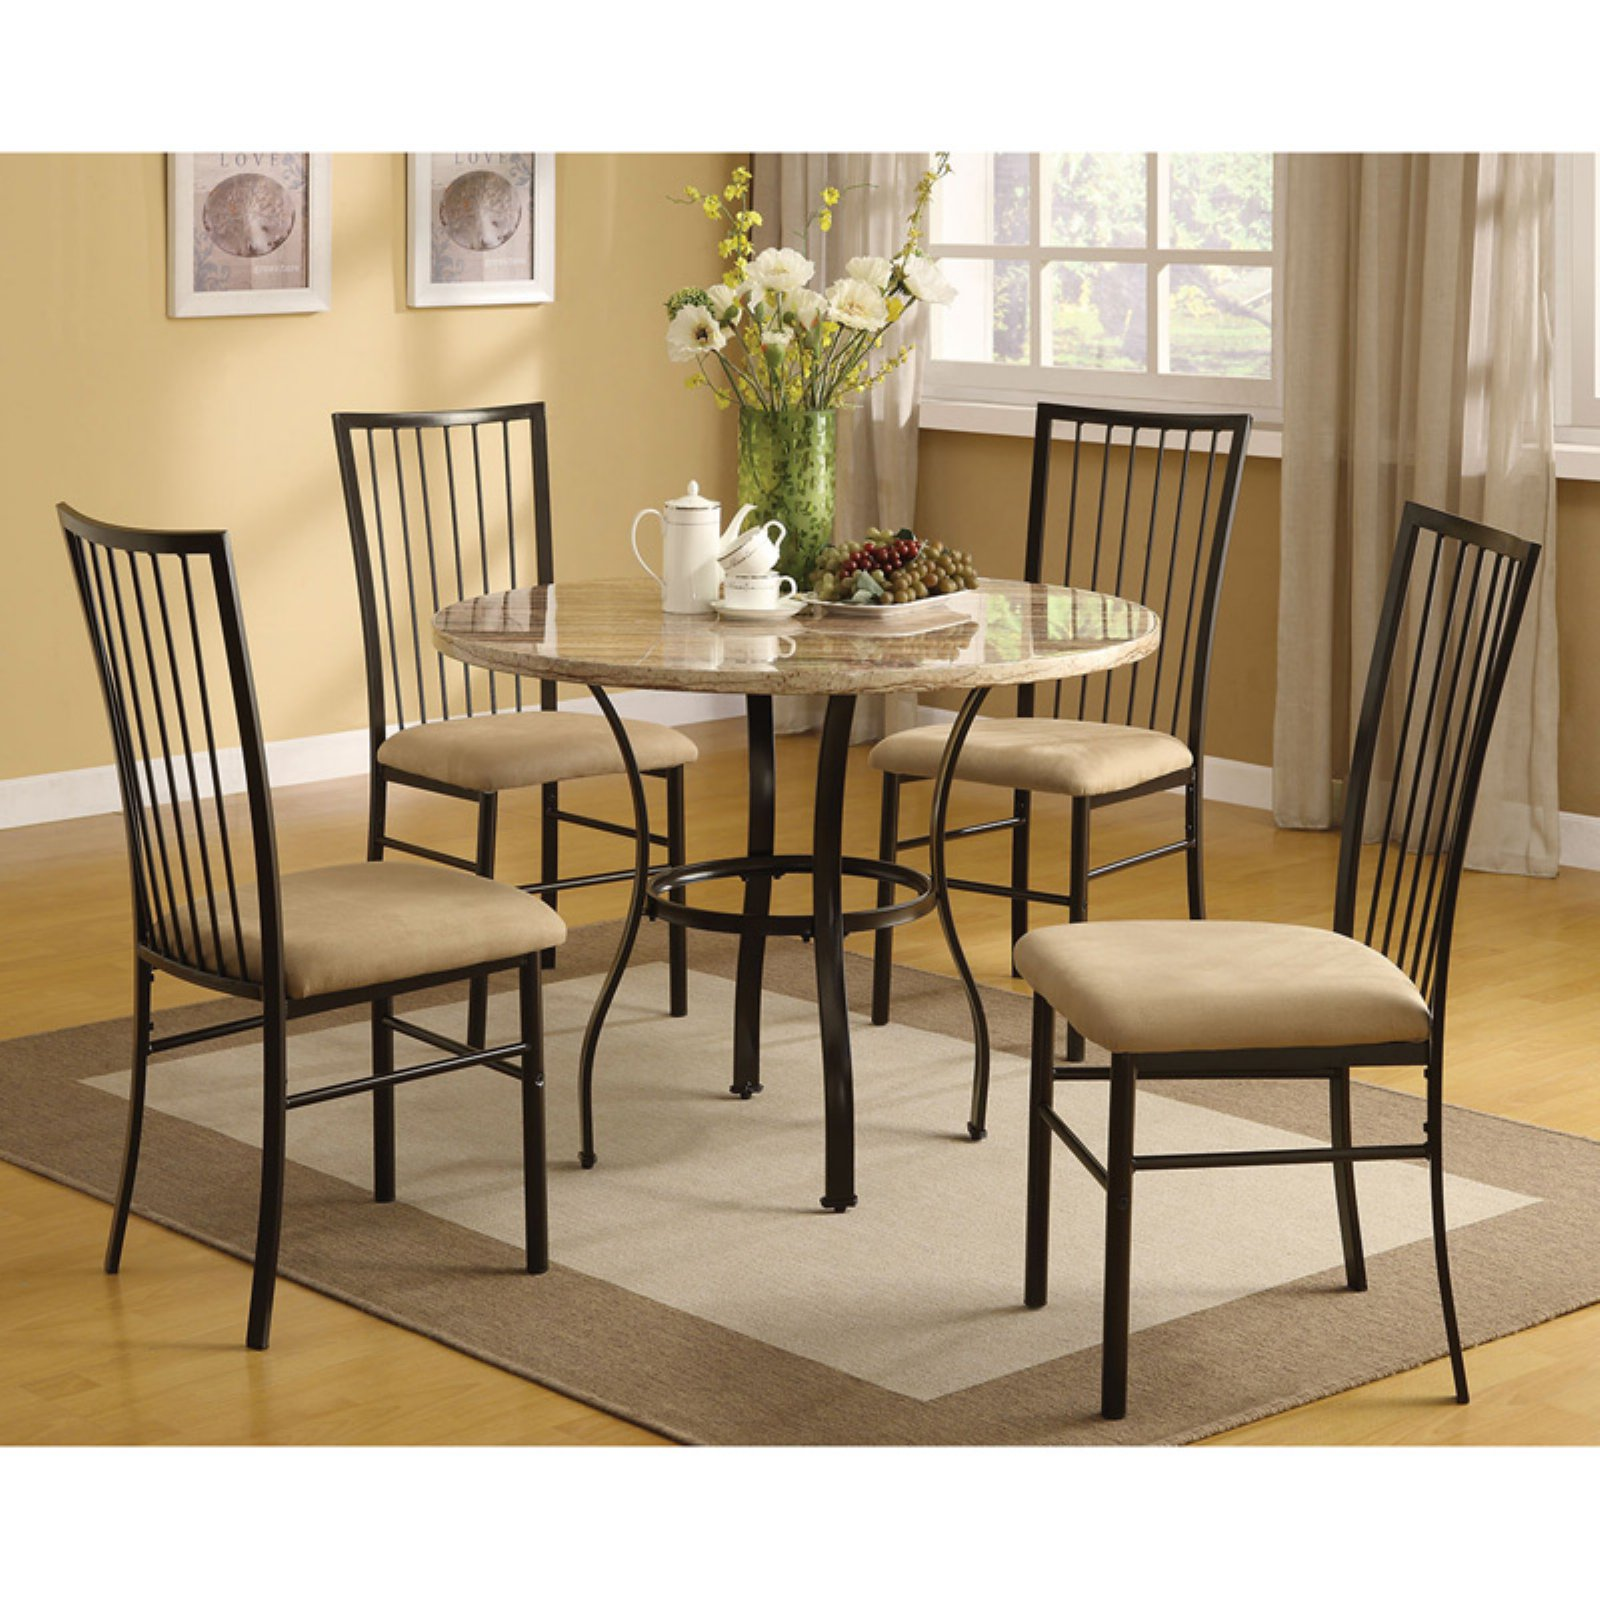 Darell Faux Marble Top 5-Piece Dining Room Set by Acme